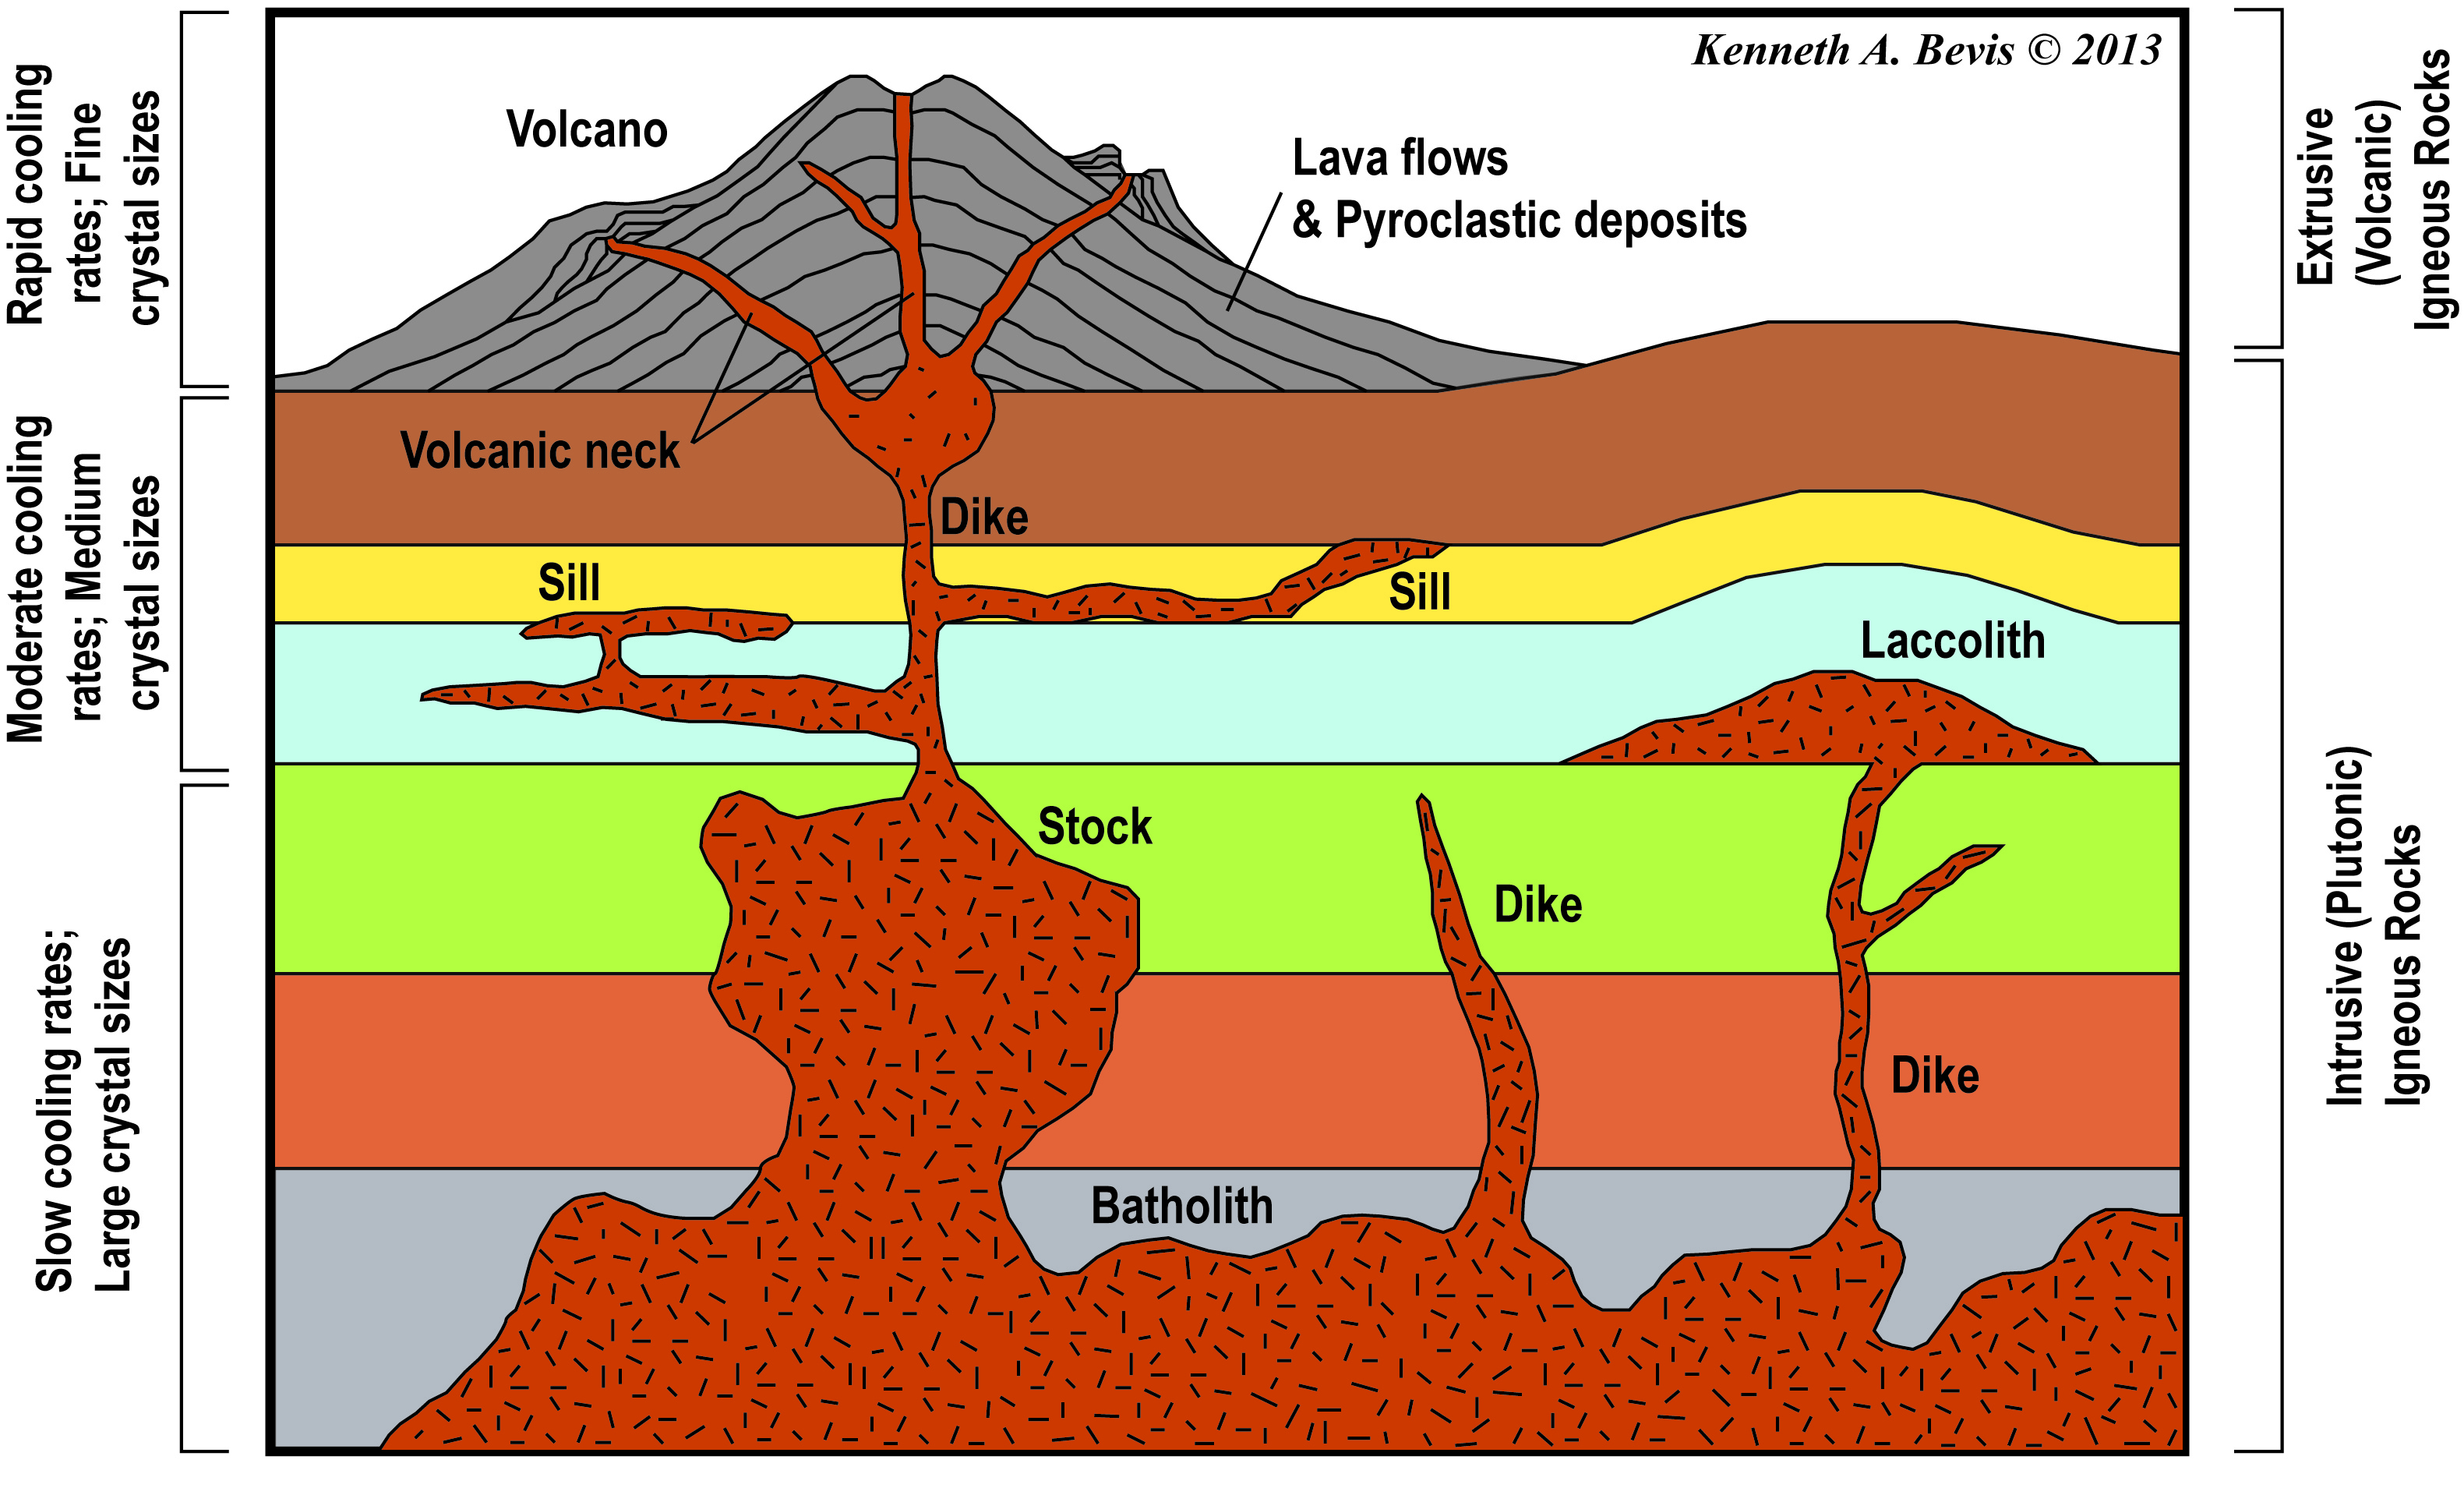 Some Examples Of Intrusive And Extrusive Igneous Rock Bodies An Introduction To Physical Geology In Geology Volcano Science Projects Structure Of The Earth